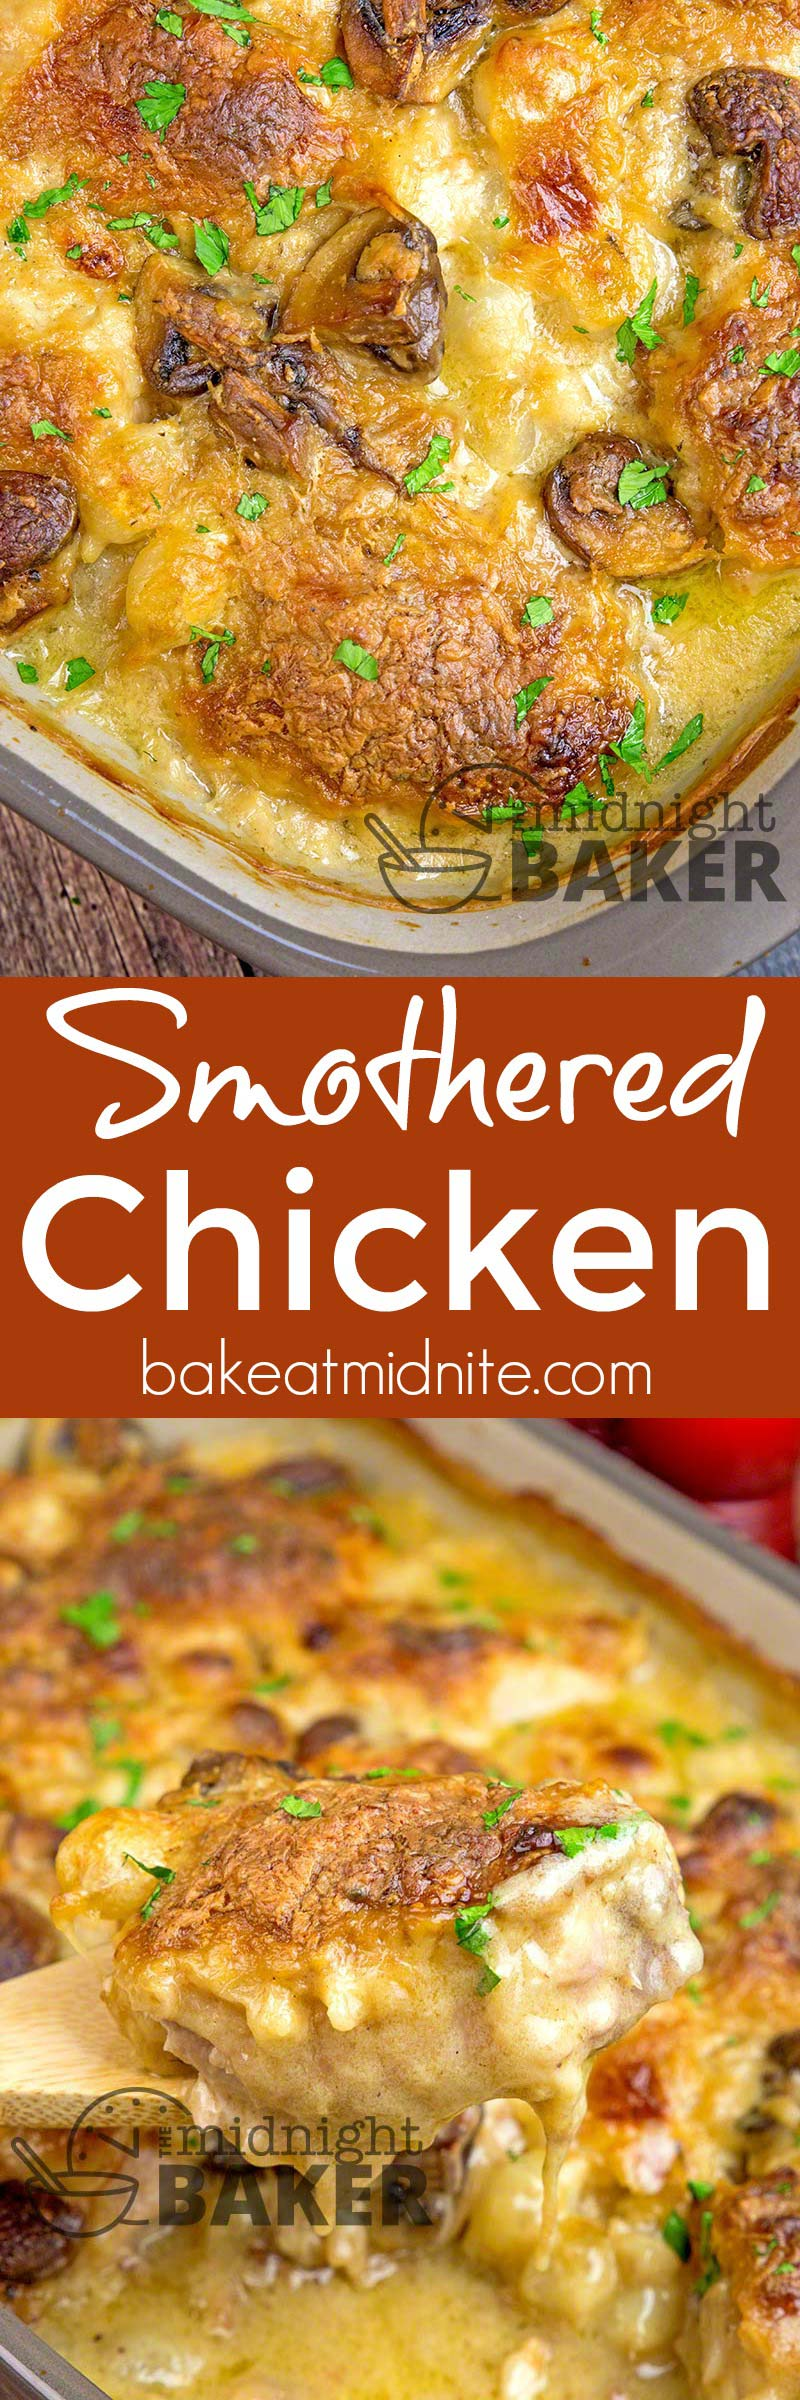 This smothered chicken is the ultimate comfort food!